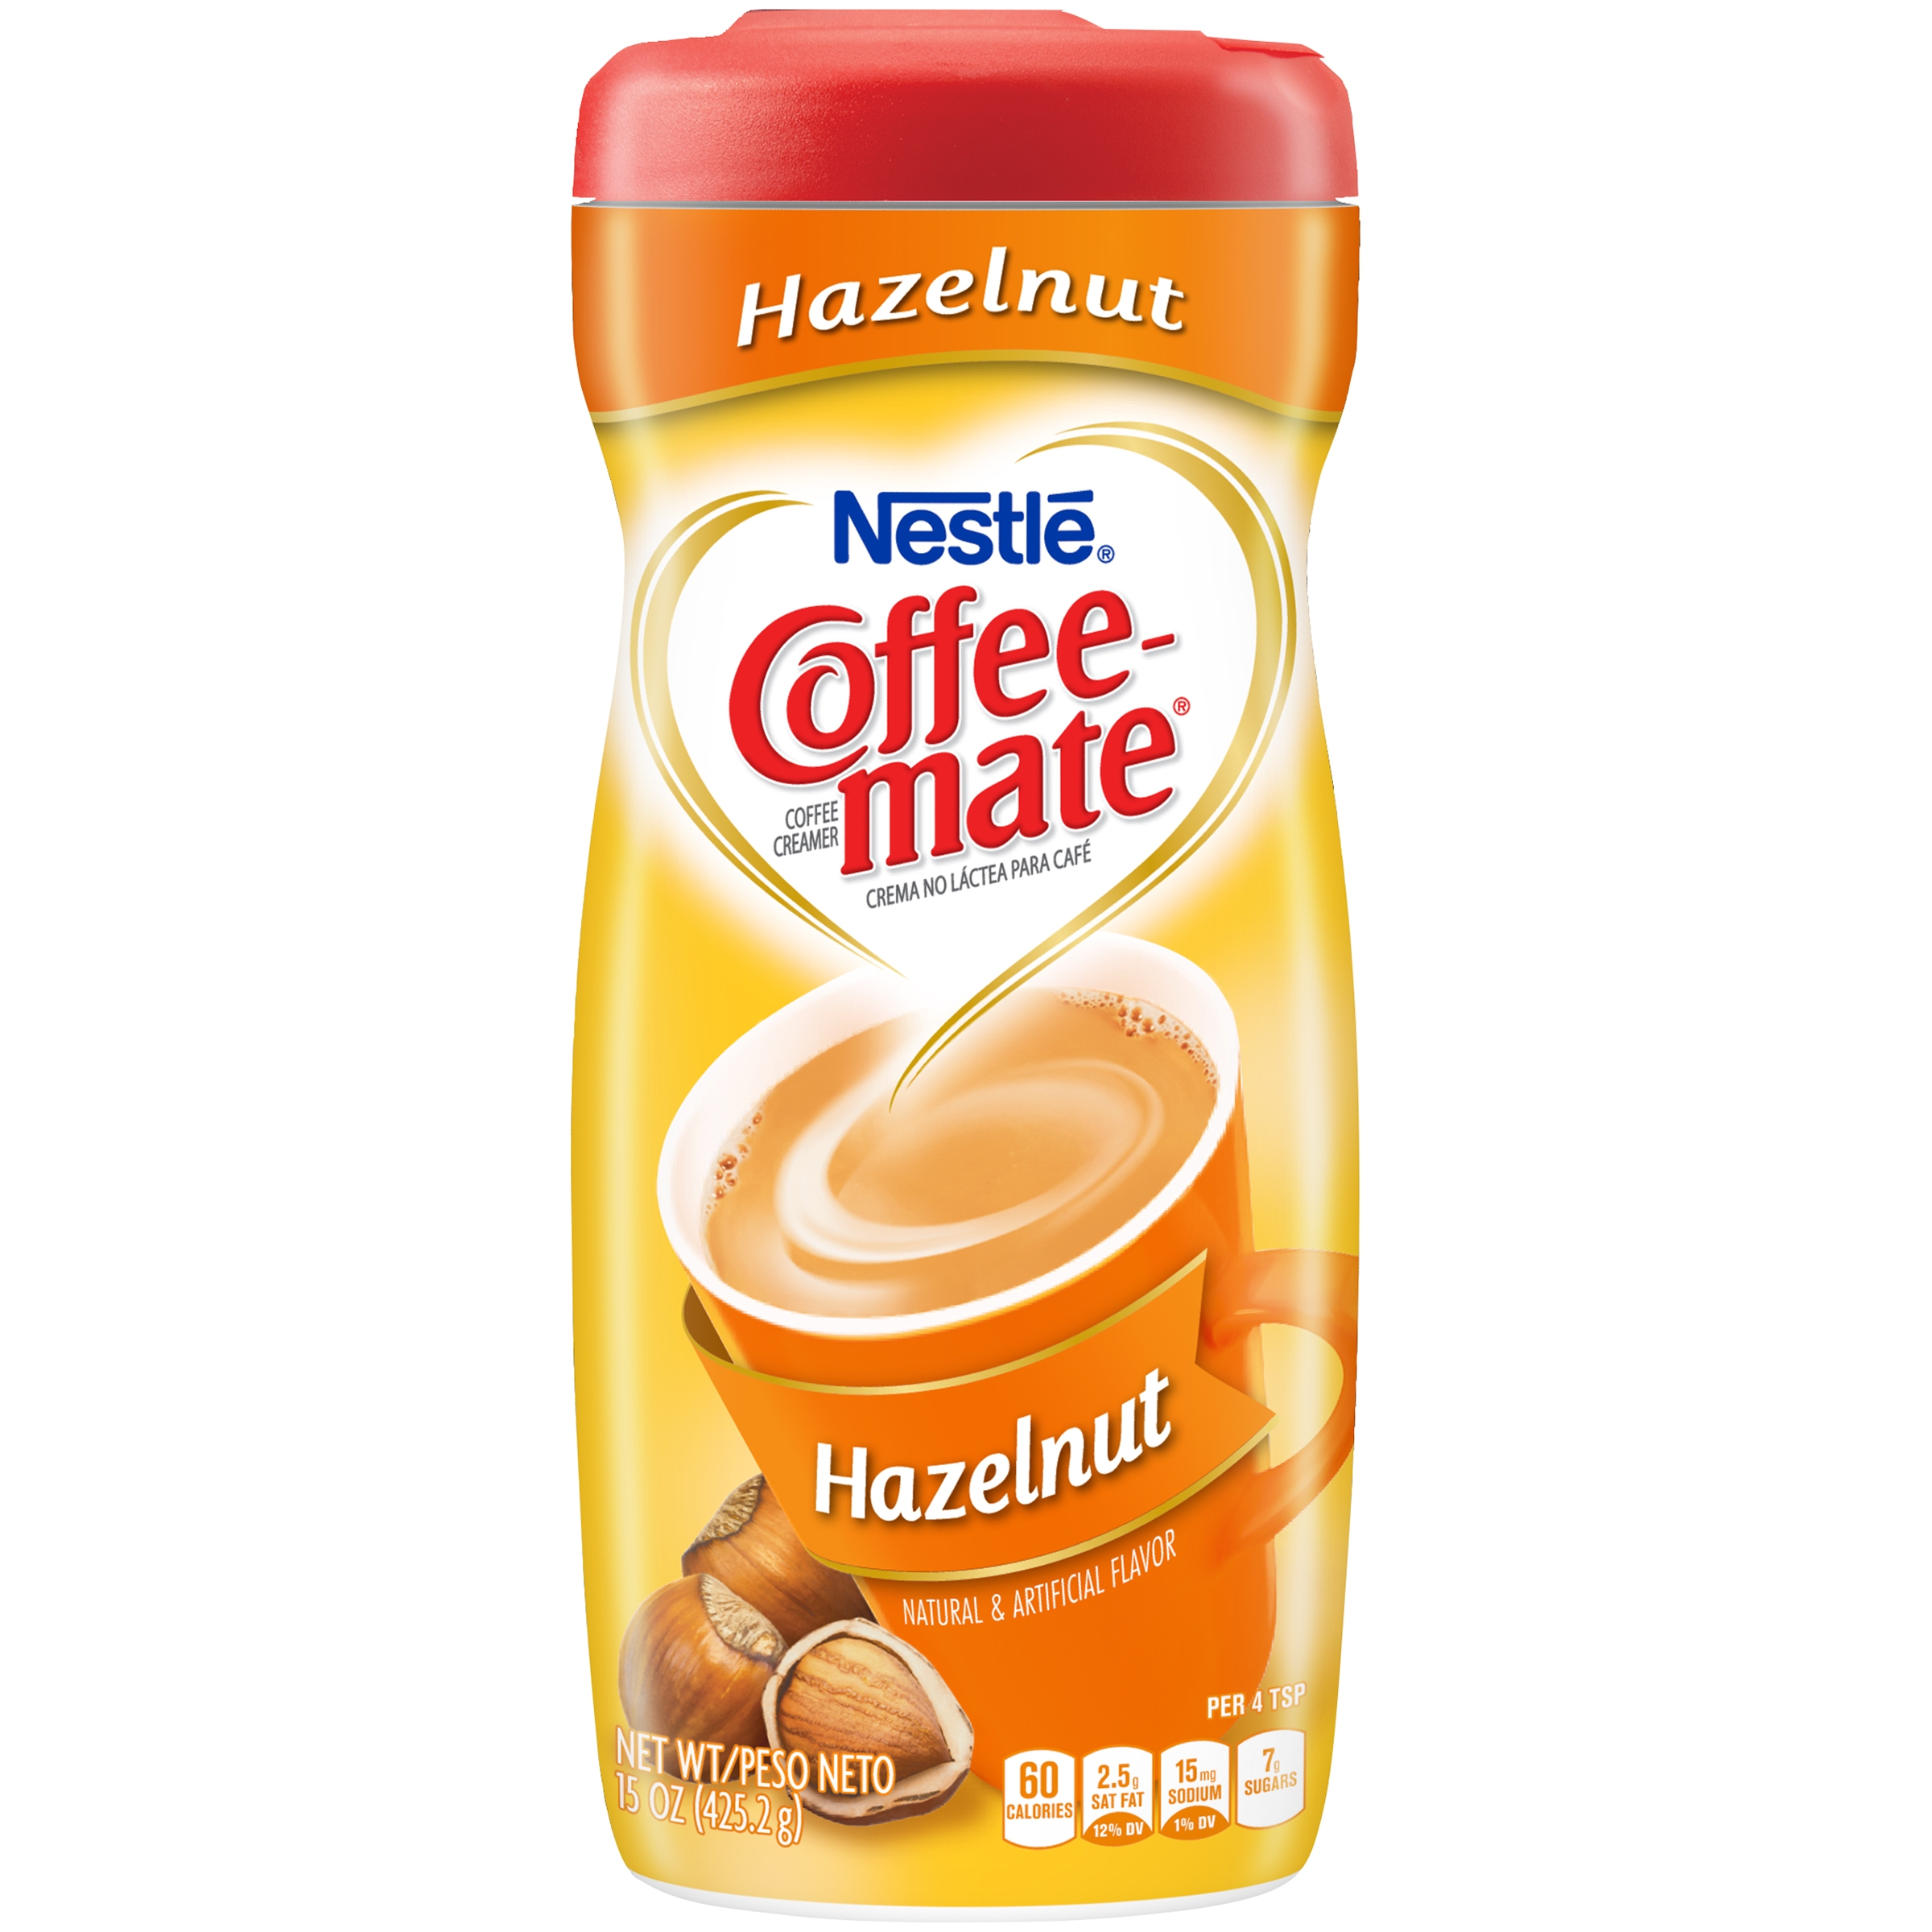 (3 pack) COFFEE MATE Hazelnut Powder Coffee Creamer 15 oz. Canister